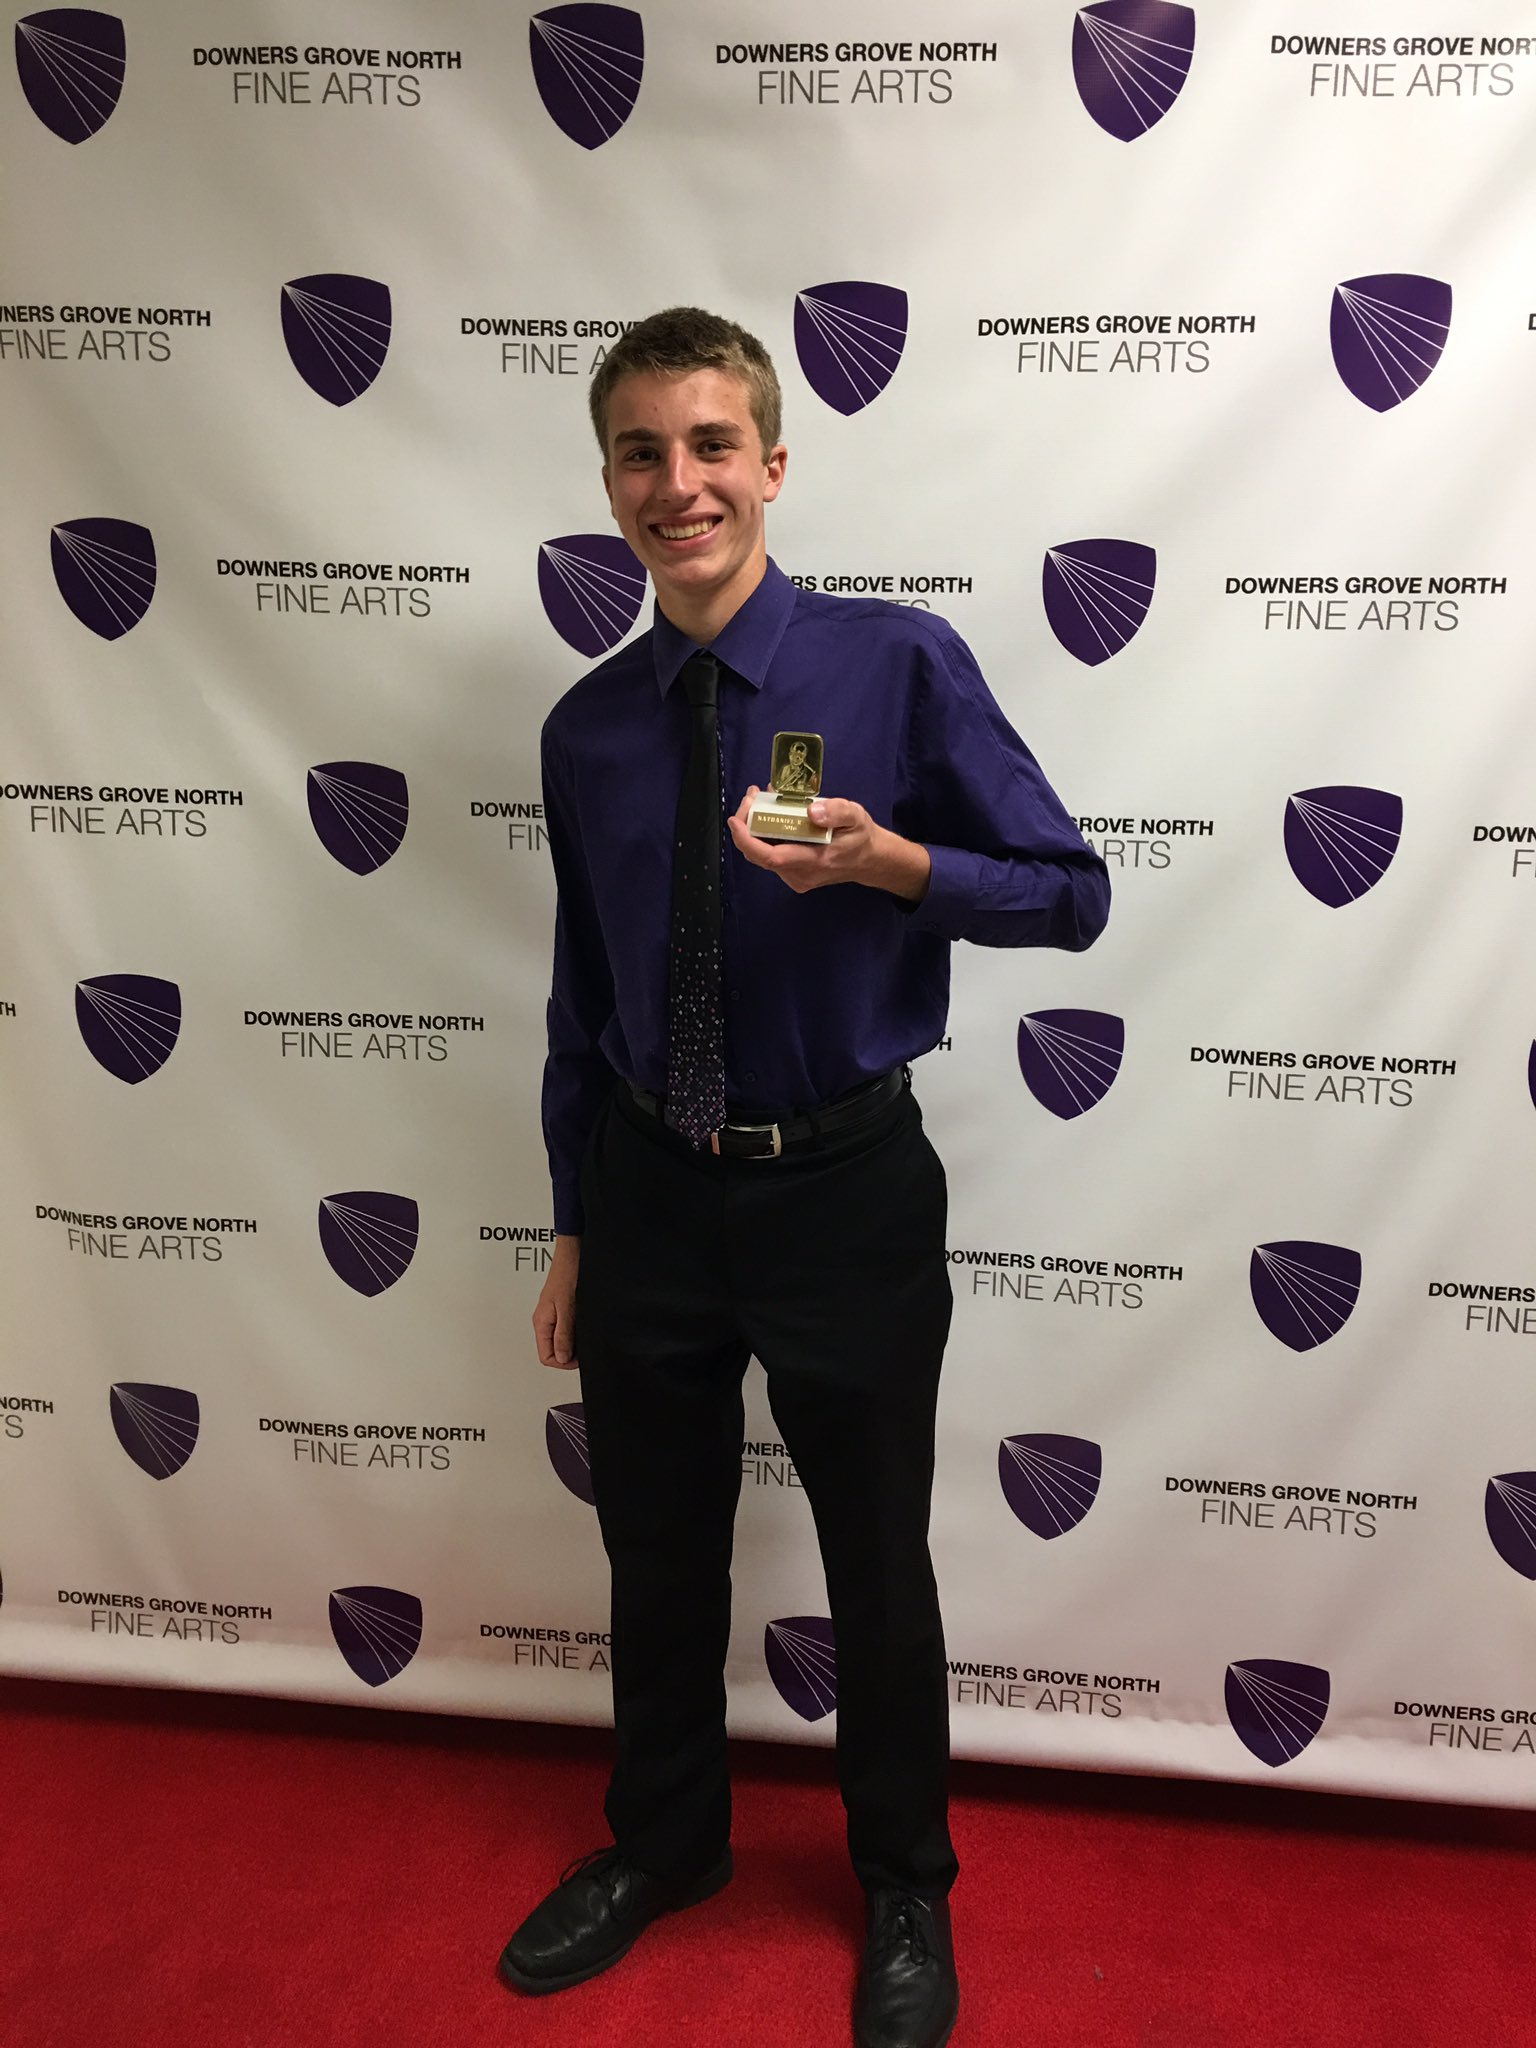 2016 Louis Armstrong Jazz Award: Nate Rapach #WeAreDGN #99Learns https://t.co/UVBdlrzrn5